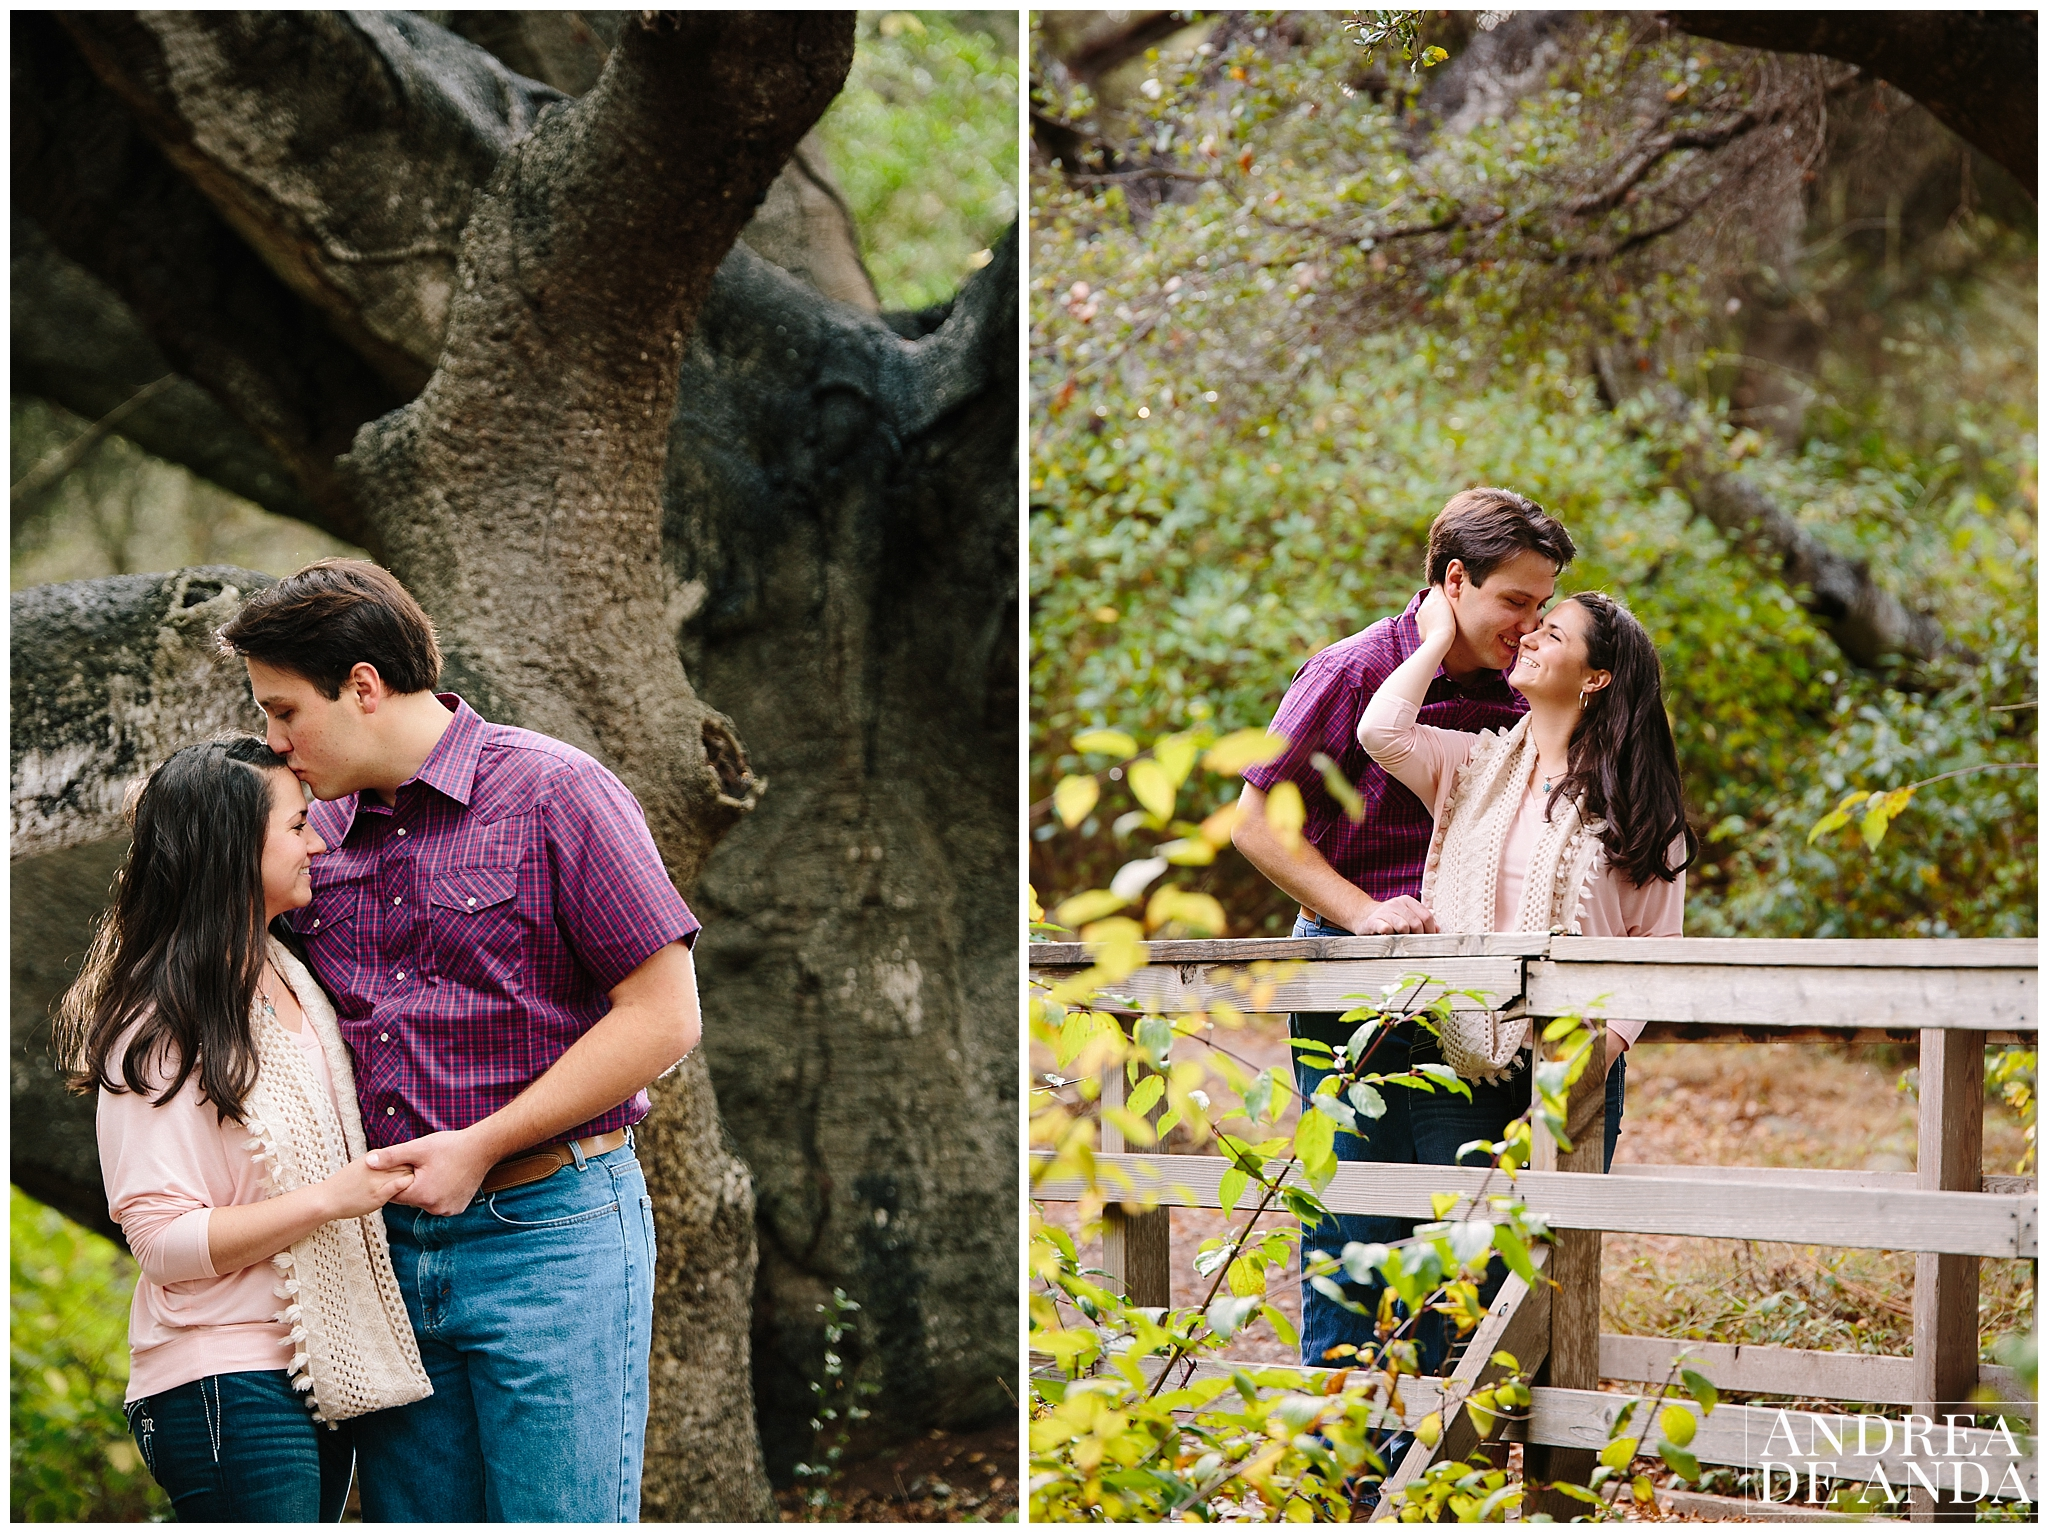 San Luis Obispo_Engagement session_Andrea de Anda Photography__0001.jpg